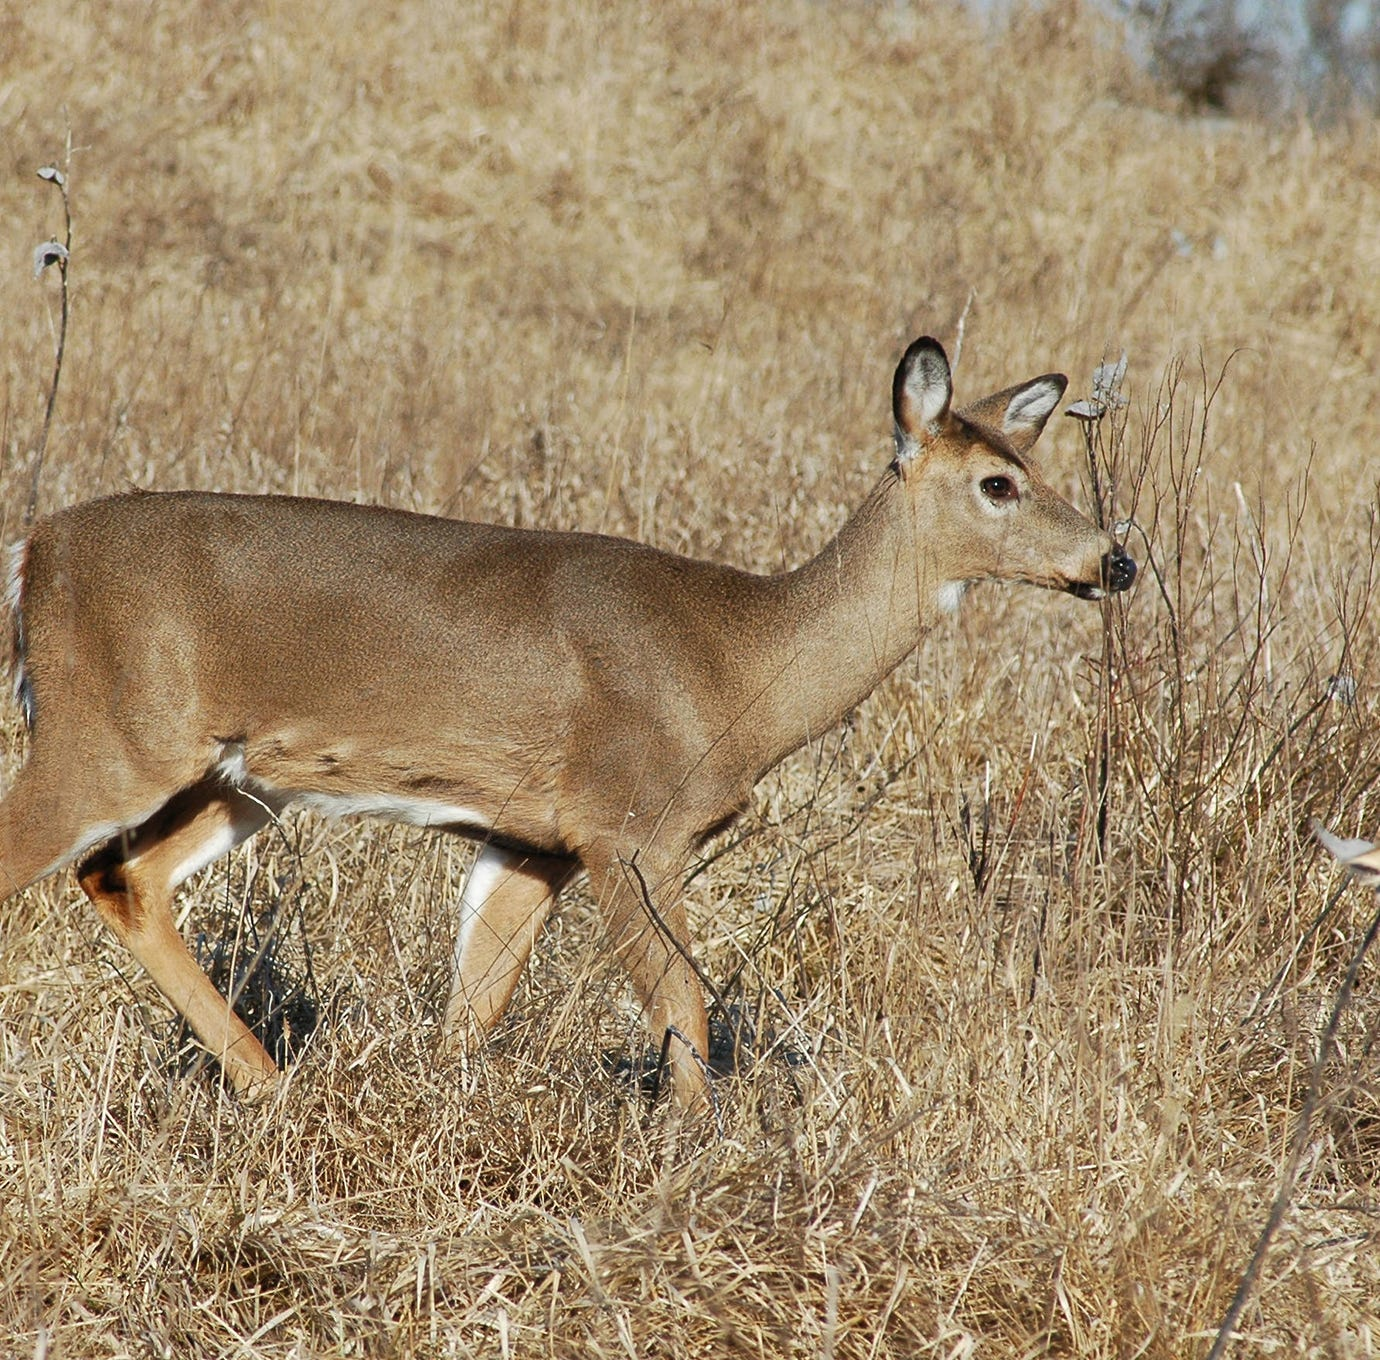 New deer hunting regulations are in place to combat CWD. Here's what you need to know